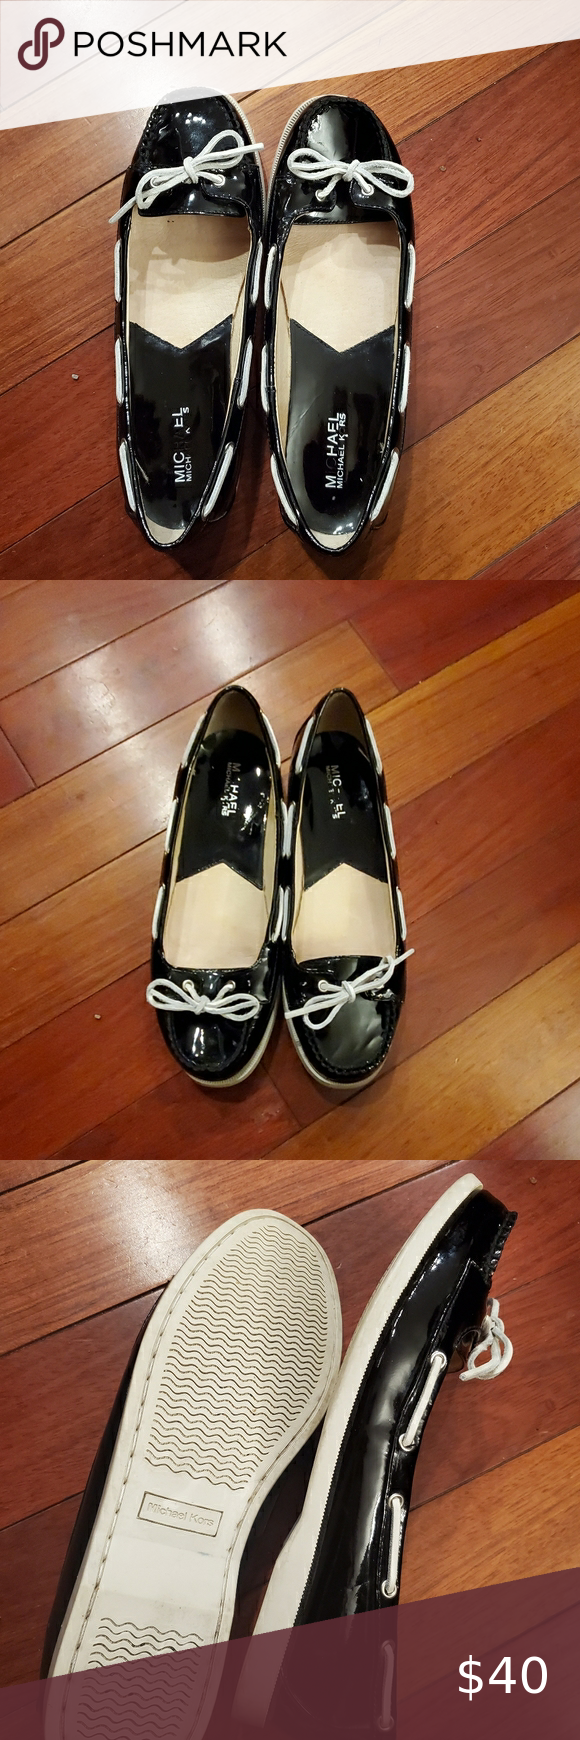 Michael Kors Patent Leather Boat Shoes